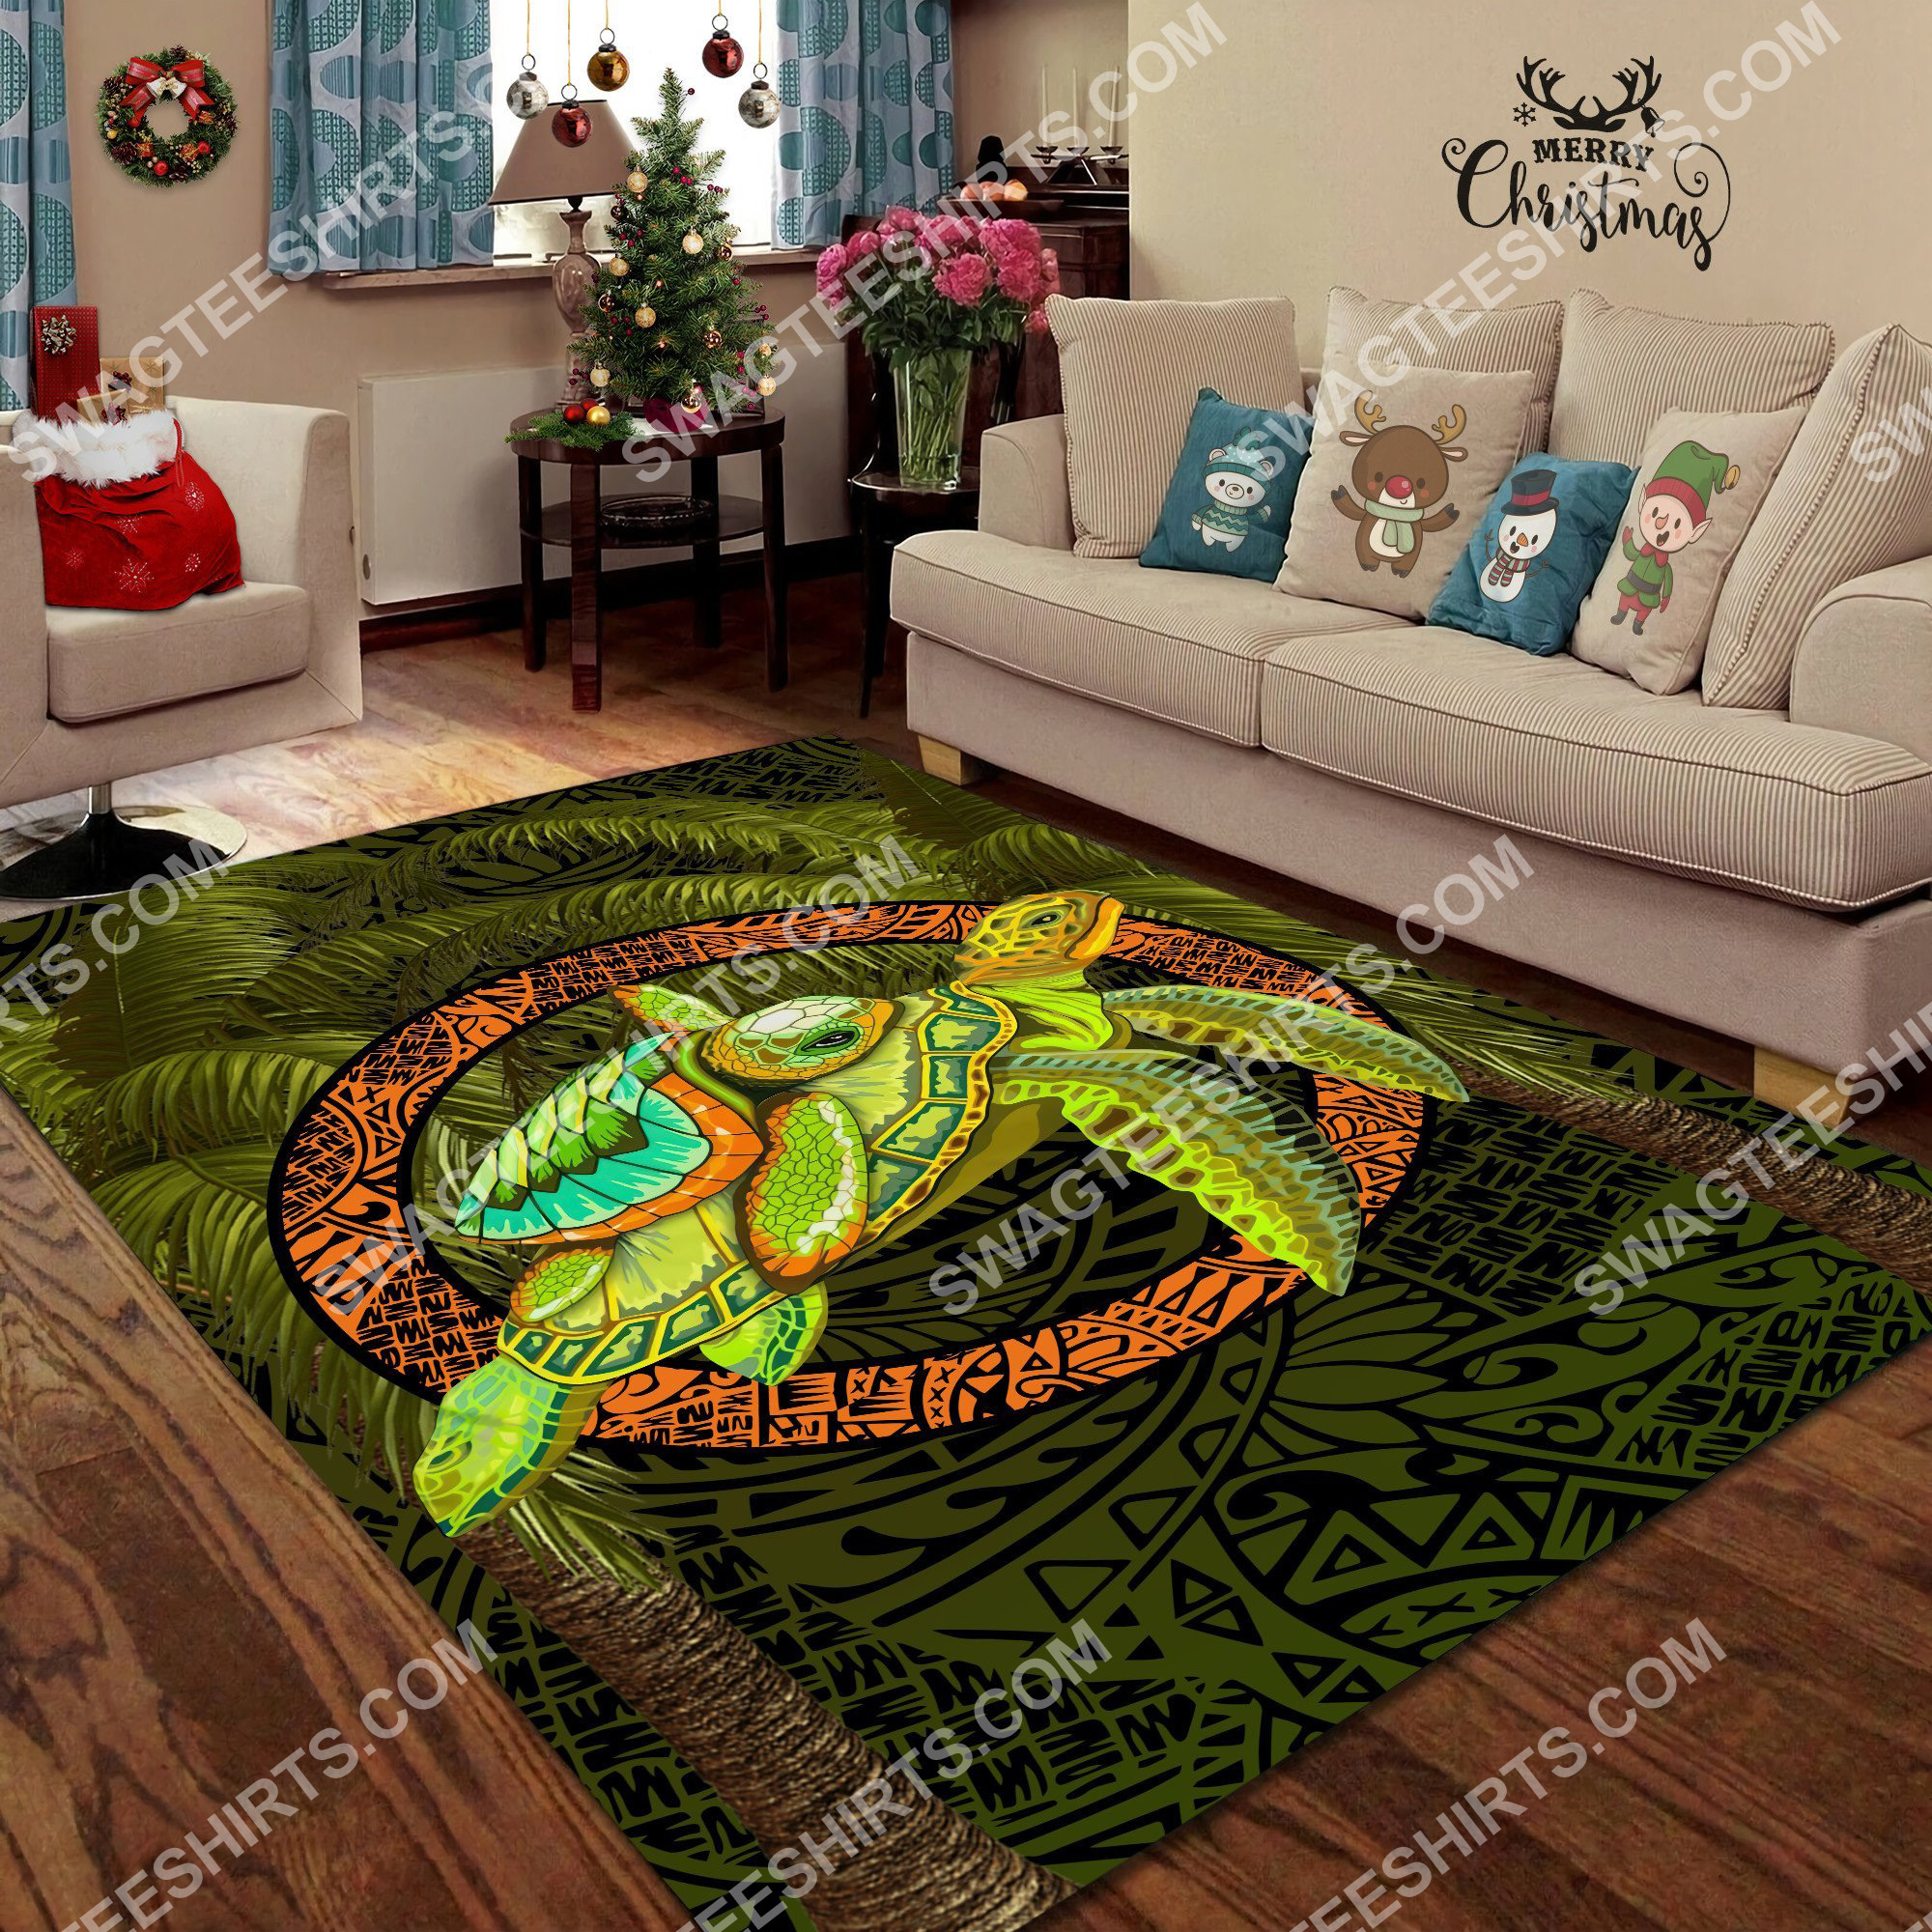 turtle palm tree art all over printed rug 4(1)